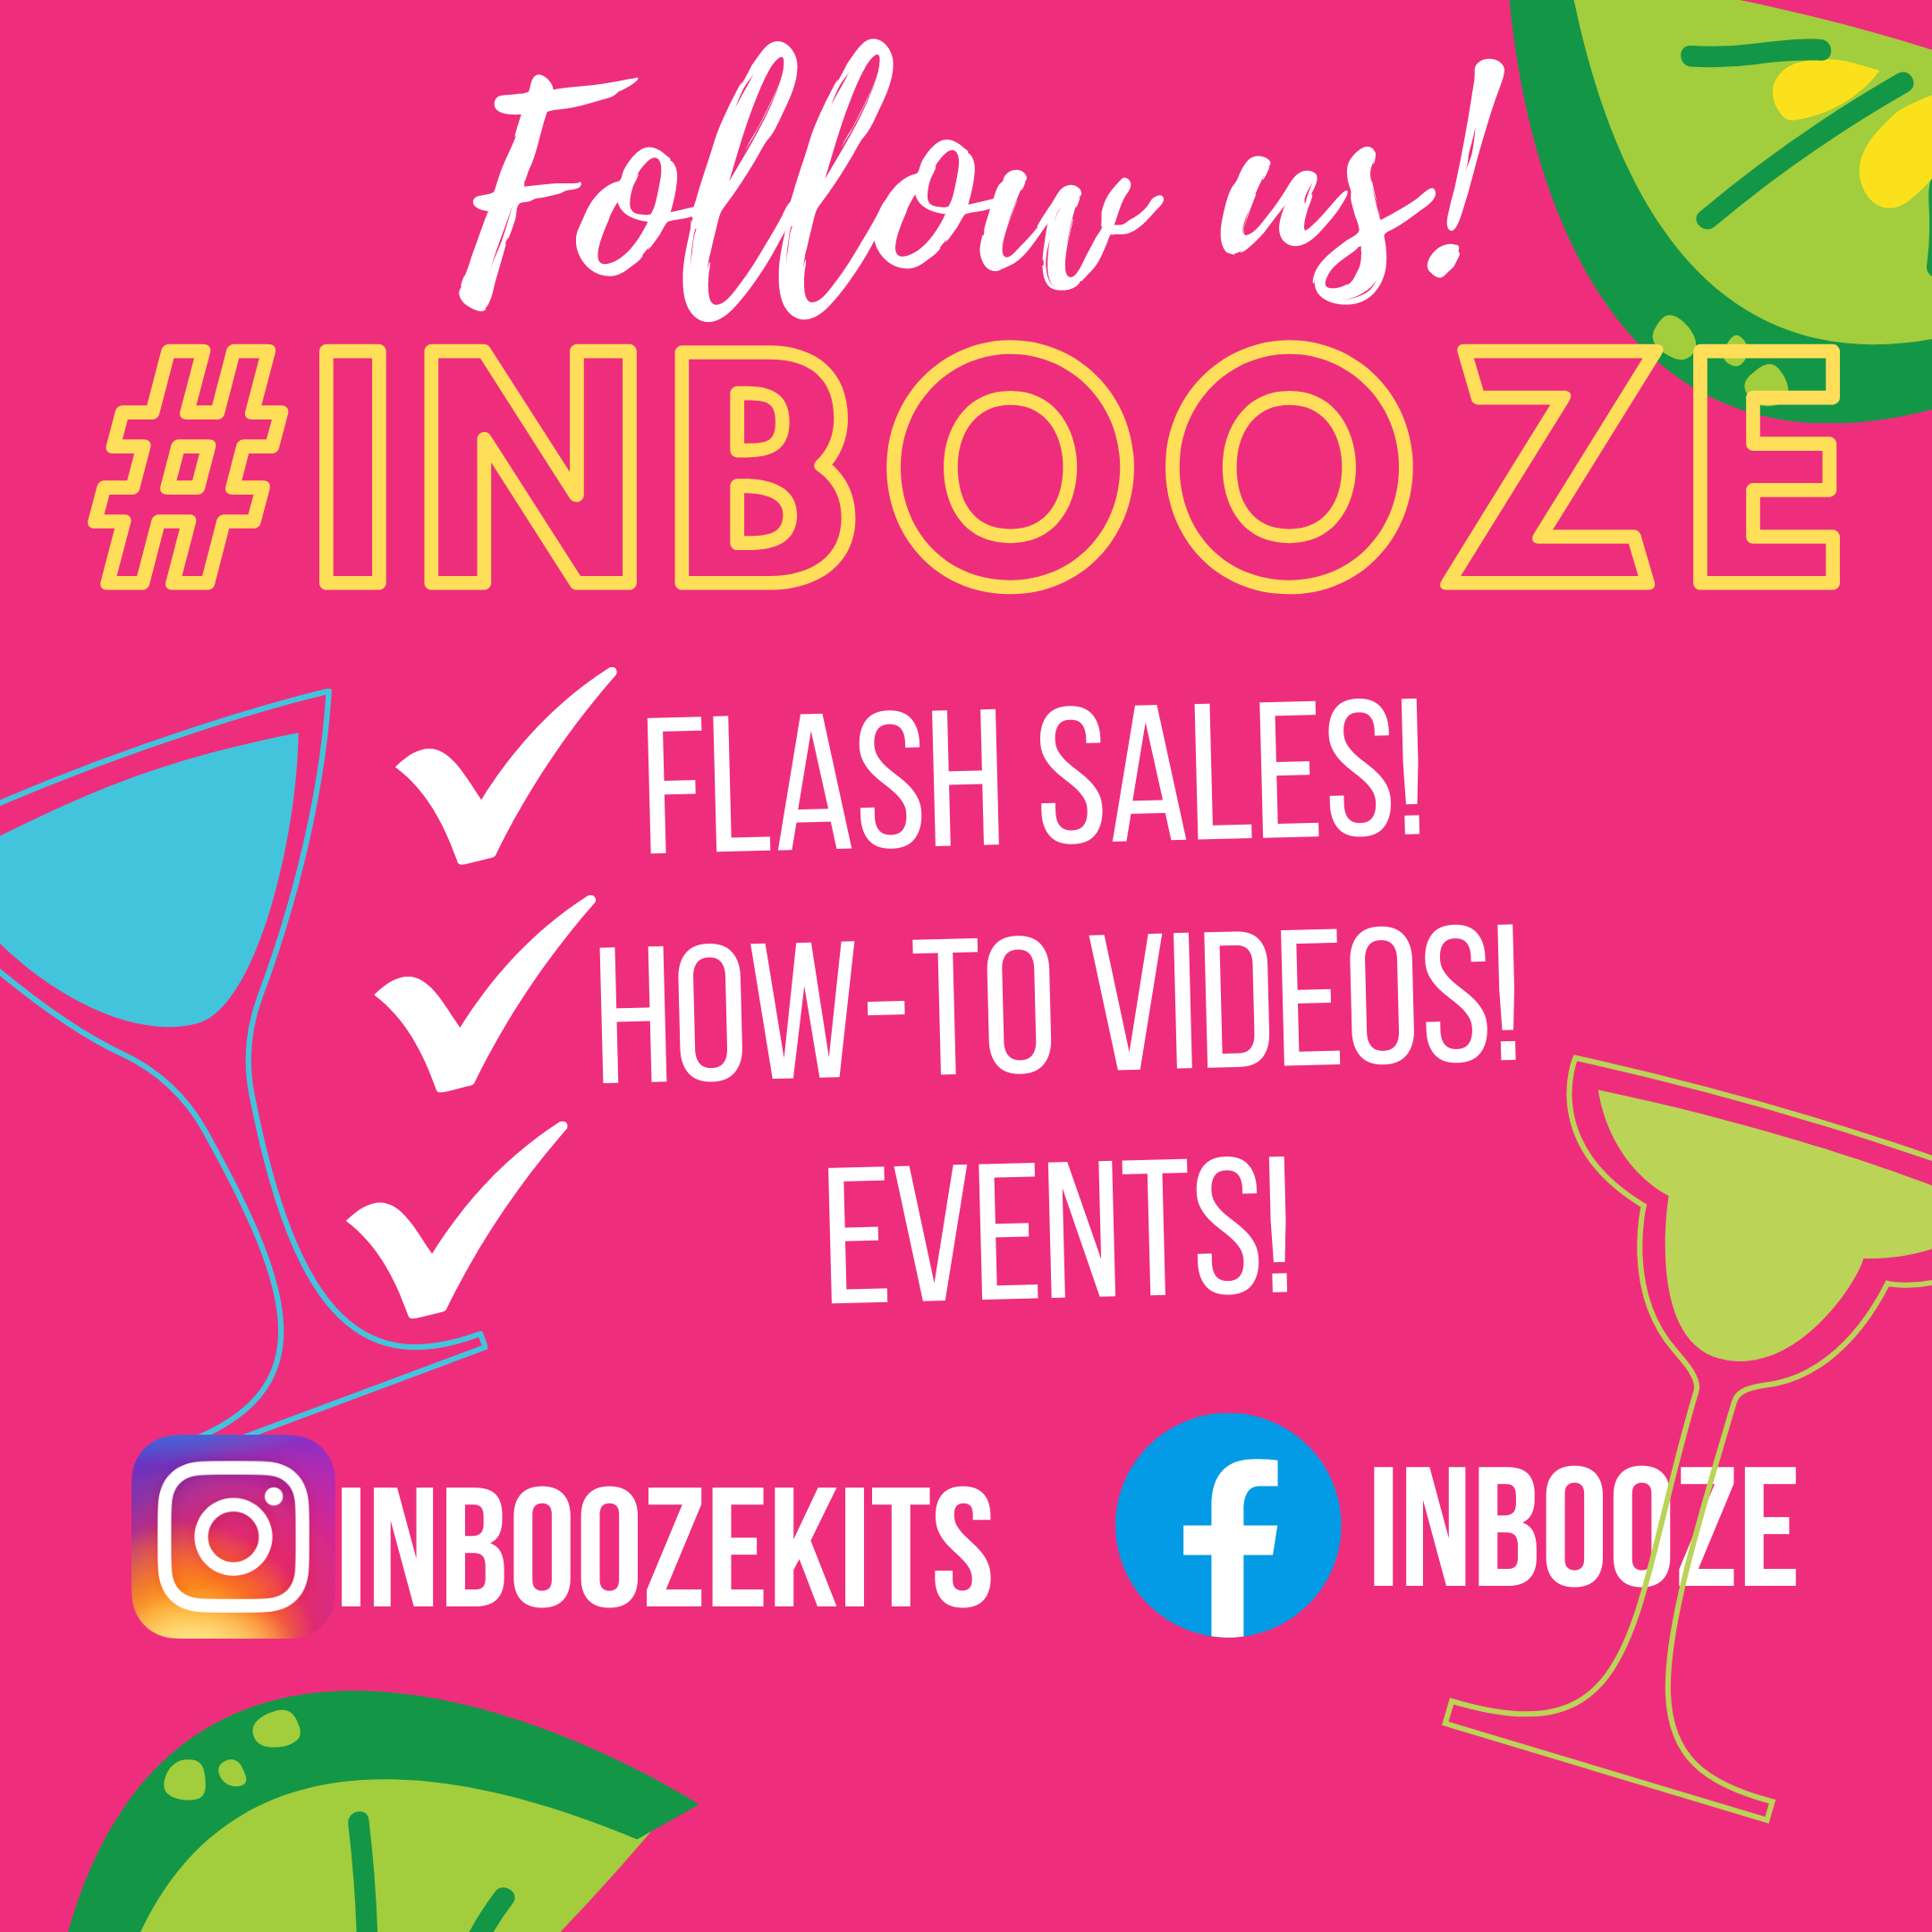 InBooze™ is owned by Ashleigh Evans, a mother of 4 and cocktail lover. In 2018, she wanted an easier (and healthier!) way for everyone to enjoy drinks at home. By infusing with simple fruits, spices and herbs, you know exactly what is in your cocktail!